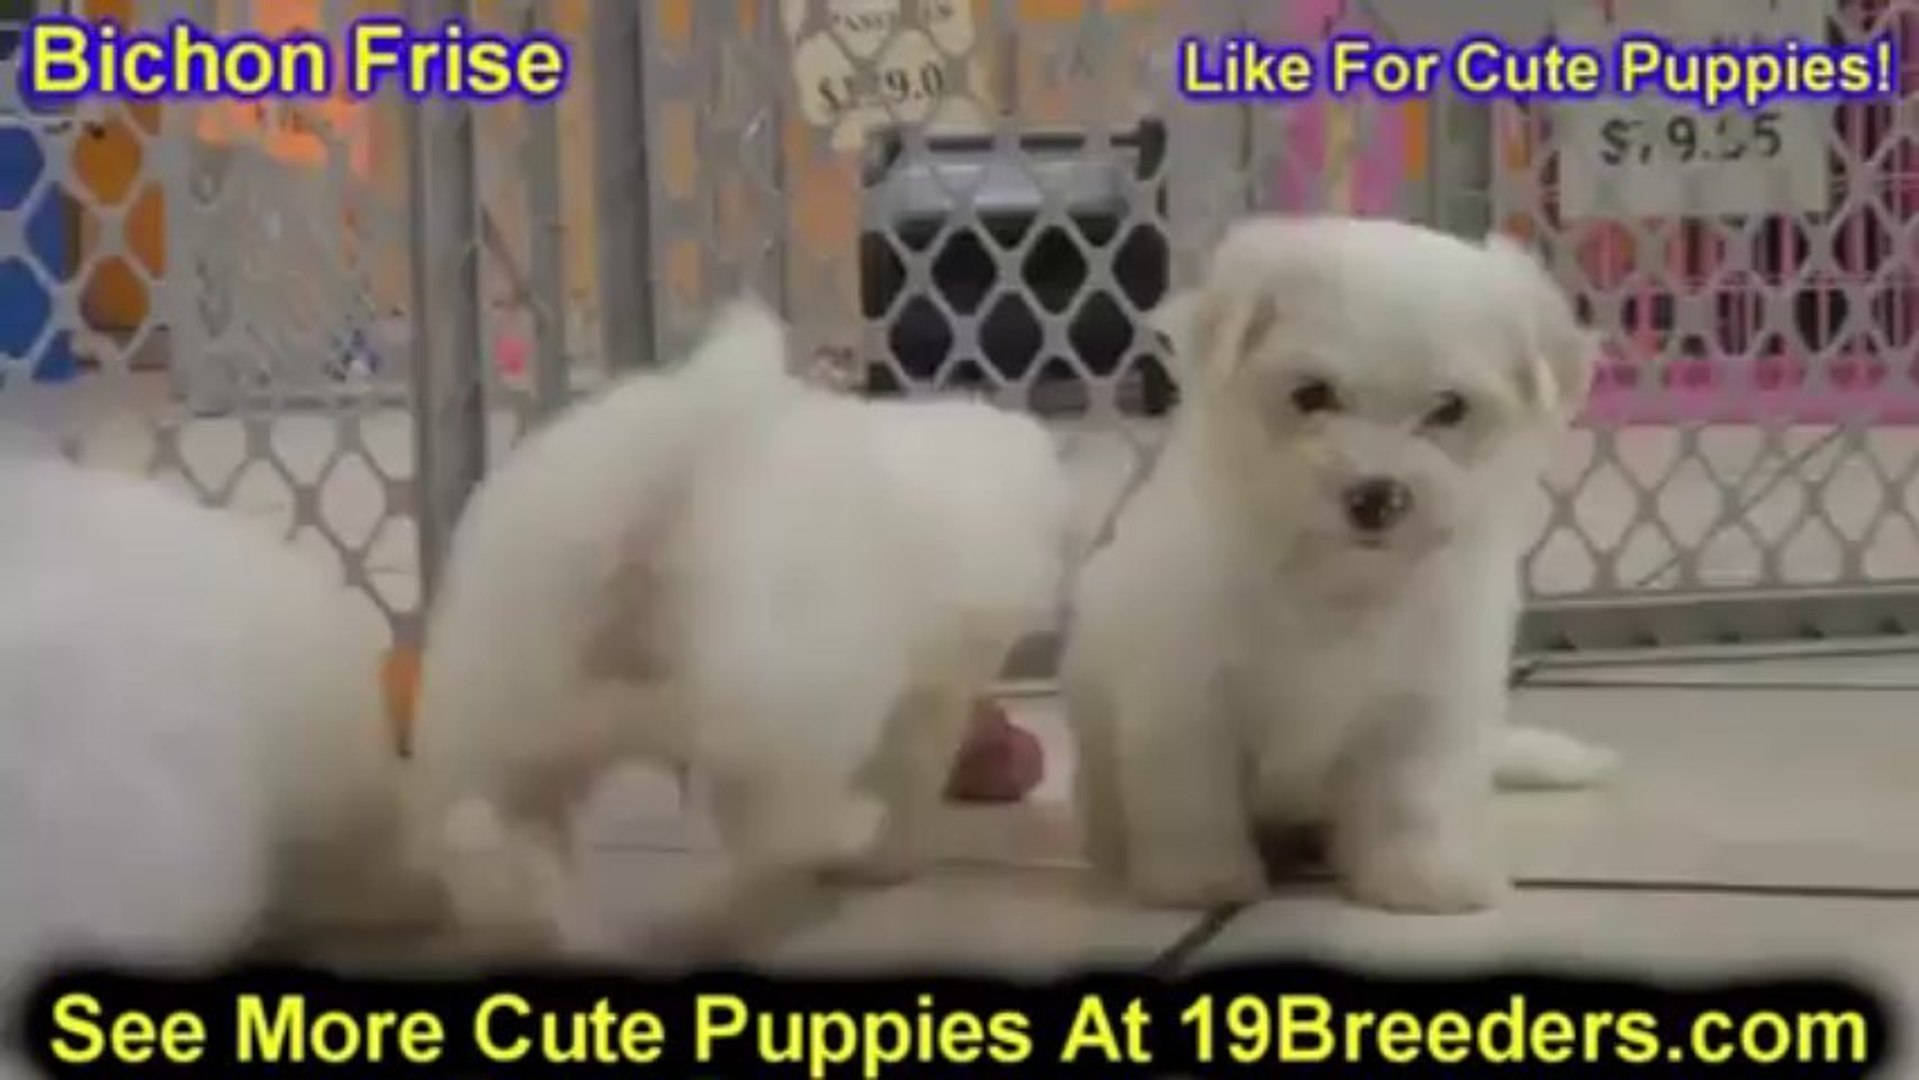 Bichon Frise, Puppies For Sale, In, Charleston, 19Breeders, South Carolina,  SC, Greenville, County